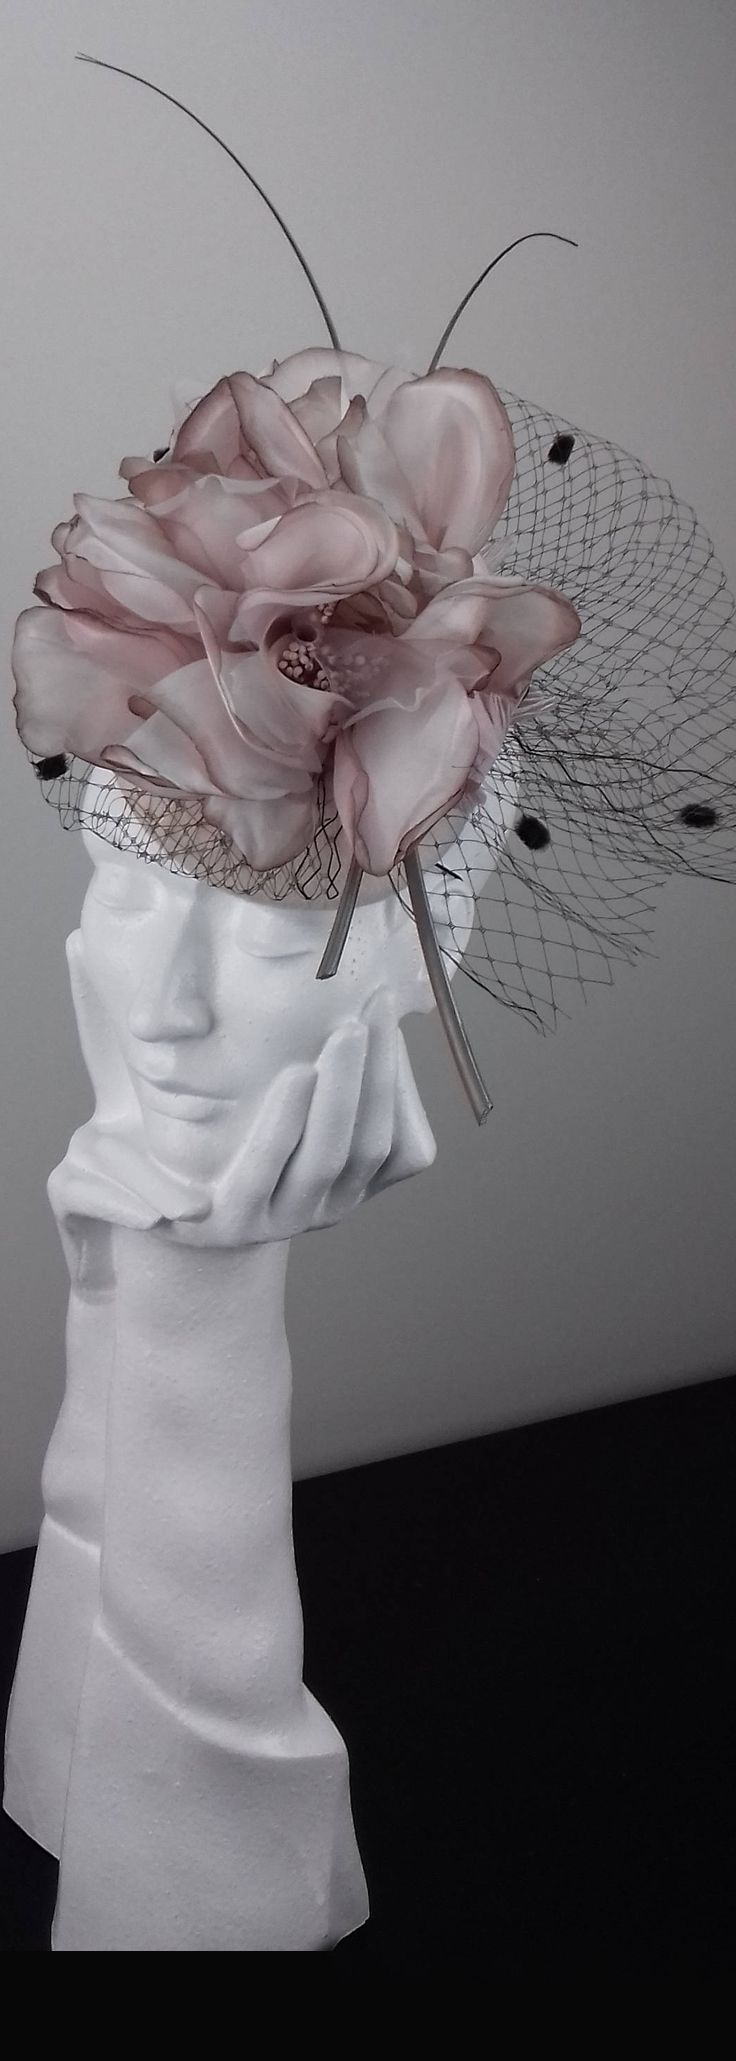 Womens Kentucky Derby Wedding Royal Ascot Church Flower Headpiece Fascinator. You can't go wrong with a feather hat for your Kentucky Derby or Royal Ascot outfits, and Churchill downs love floral hats, so this veiled flower could be the perfect fashion headpiece. Kentucky Derby Hat ideas. Outfit inspiration. Mother of the Bride, spring wedding. #kentuckyderby #derbyhats #bighats #fascinator #hatsfothederby #kentuckyderbyoutfits #motherofthebride #weddings #fashion #affiliatelink #etsyfinds